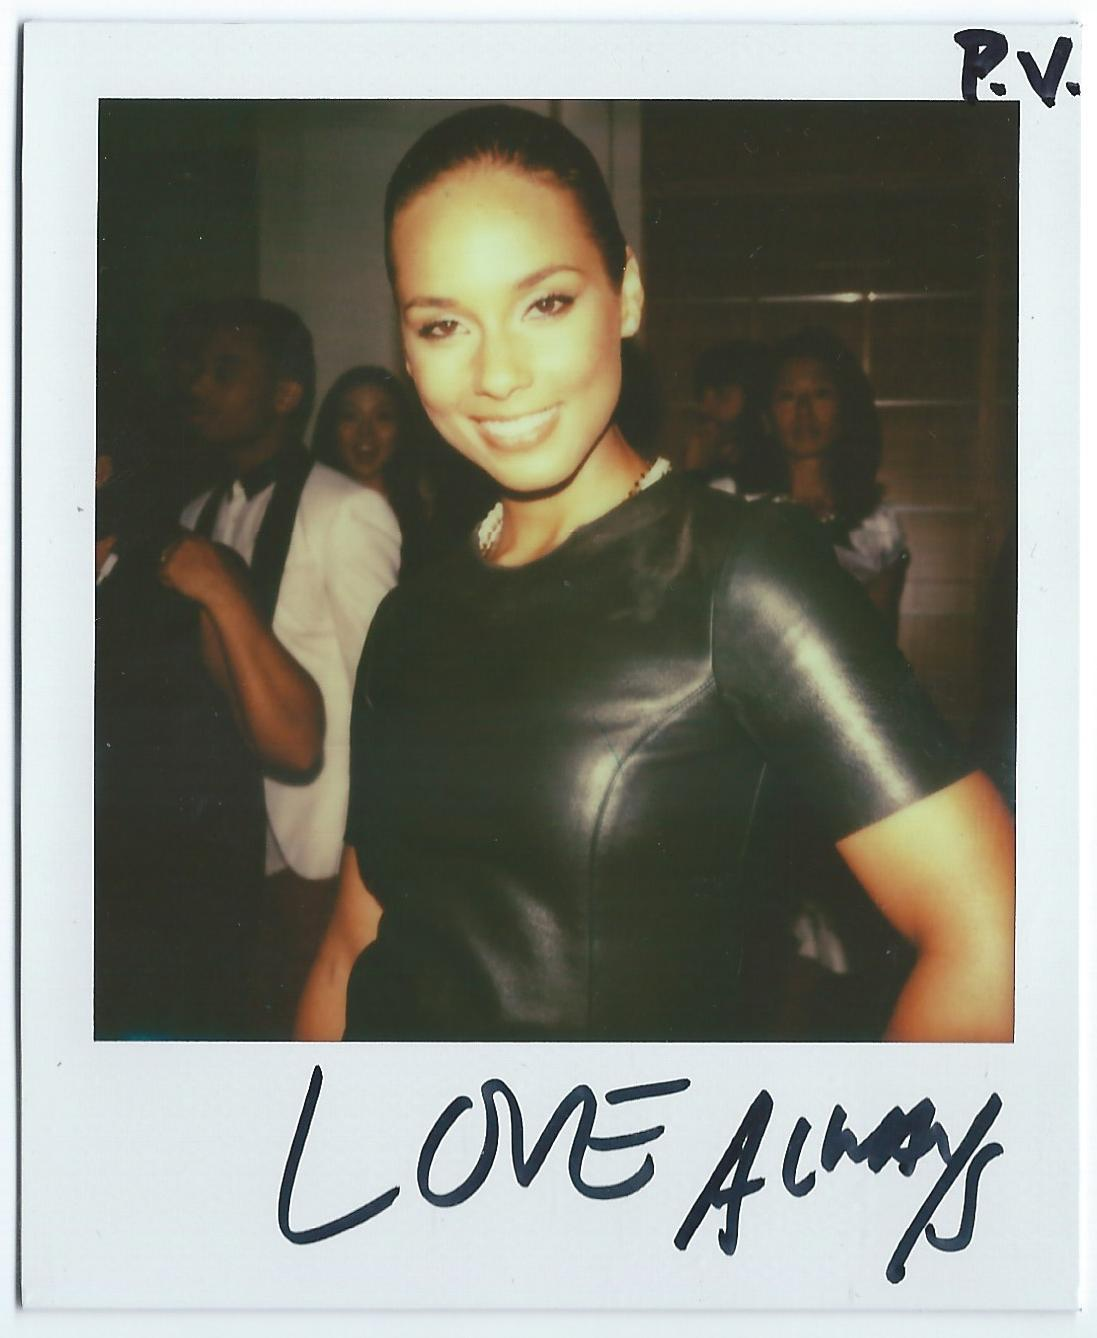 """LOVE ALWAYS"" - ALICIA KEYS"